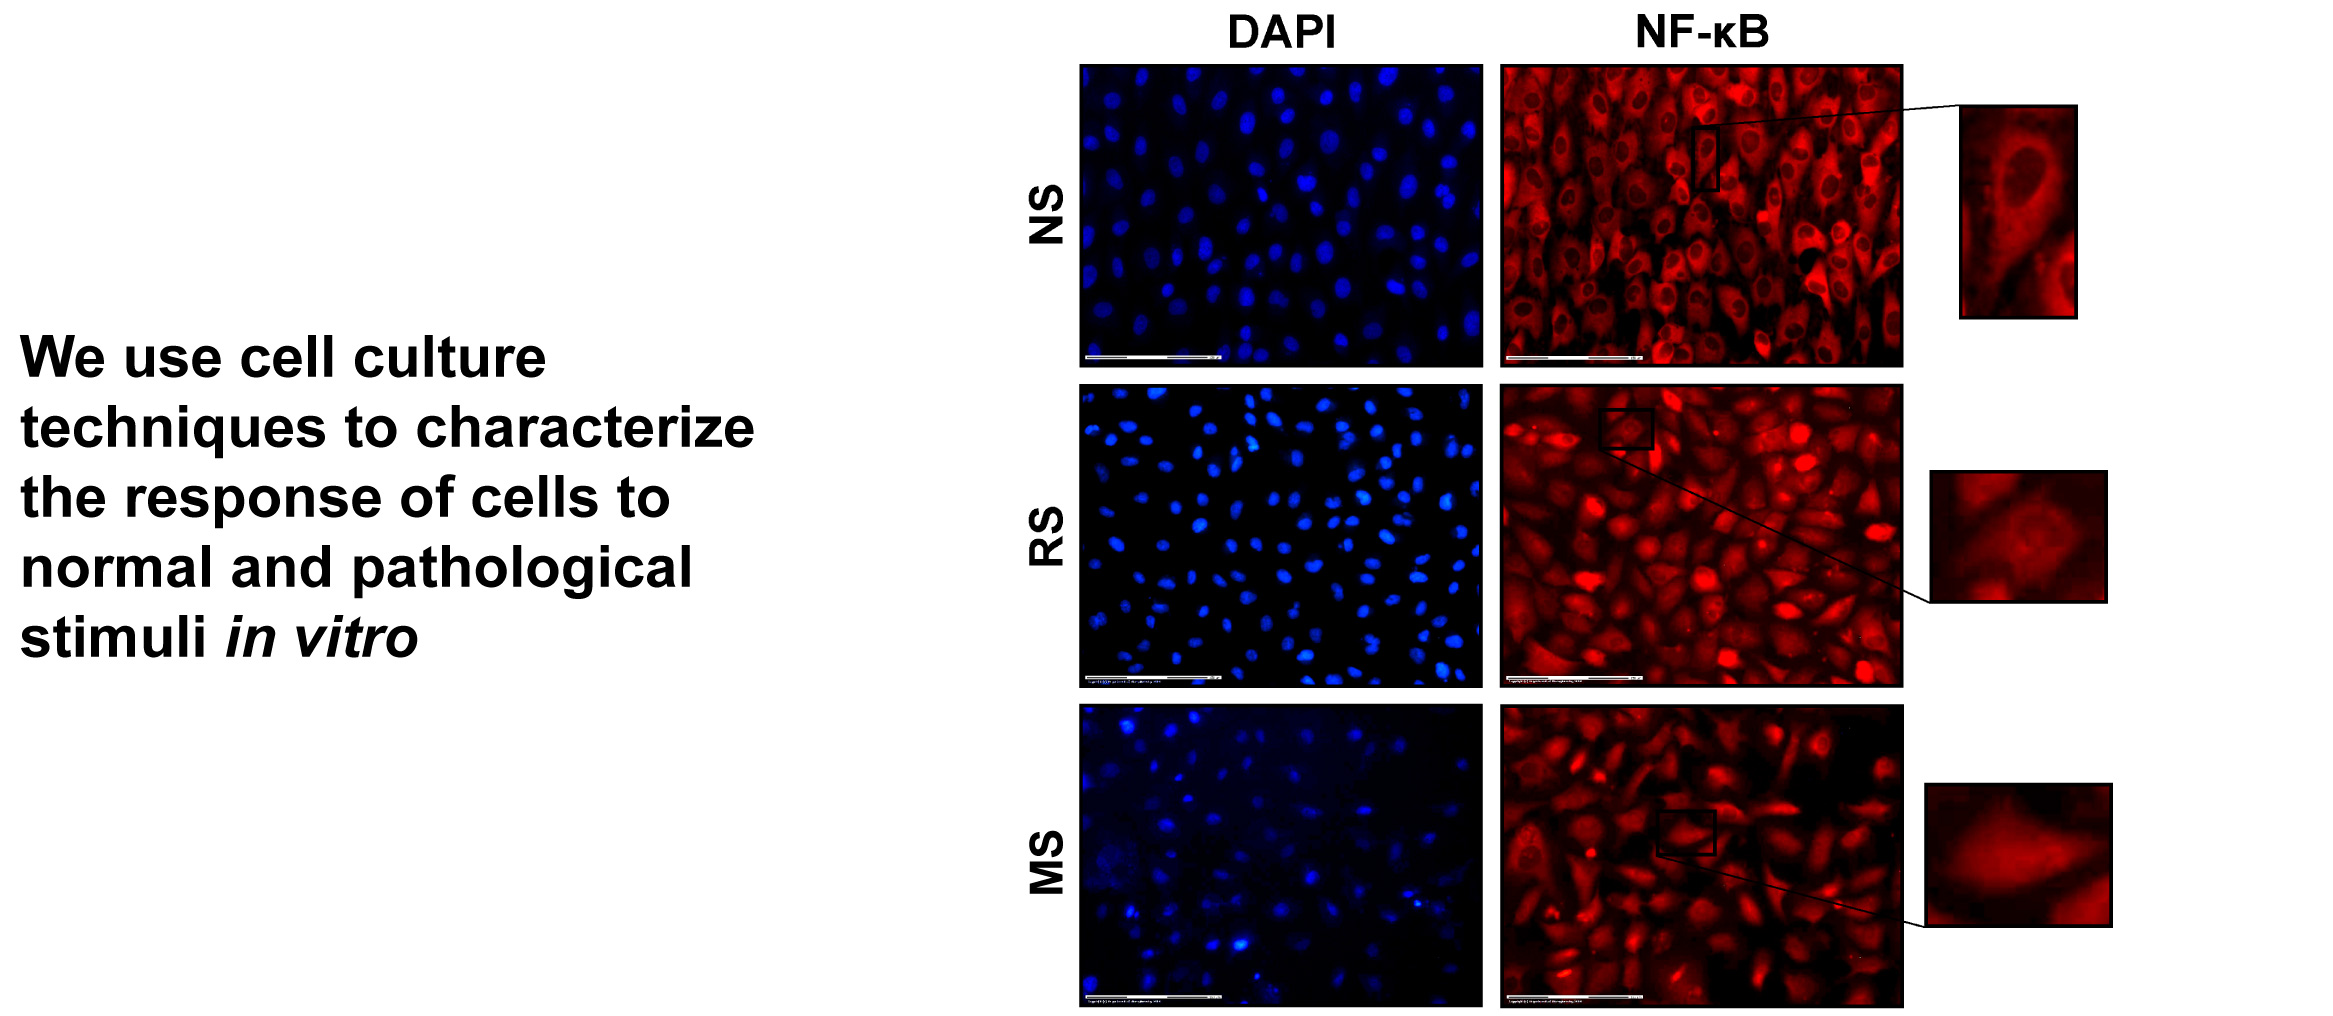 Fluorescent microscopy images of endothelial cells stained for DAPI and NF-κB after exposure to normal, reduced, and multidirectional stretch (Pedrigi et al., Ann Biomed Eng, 2017).